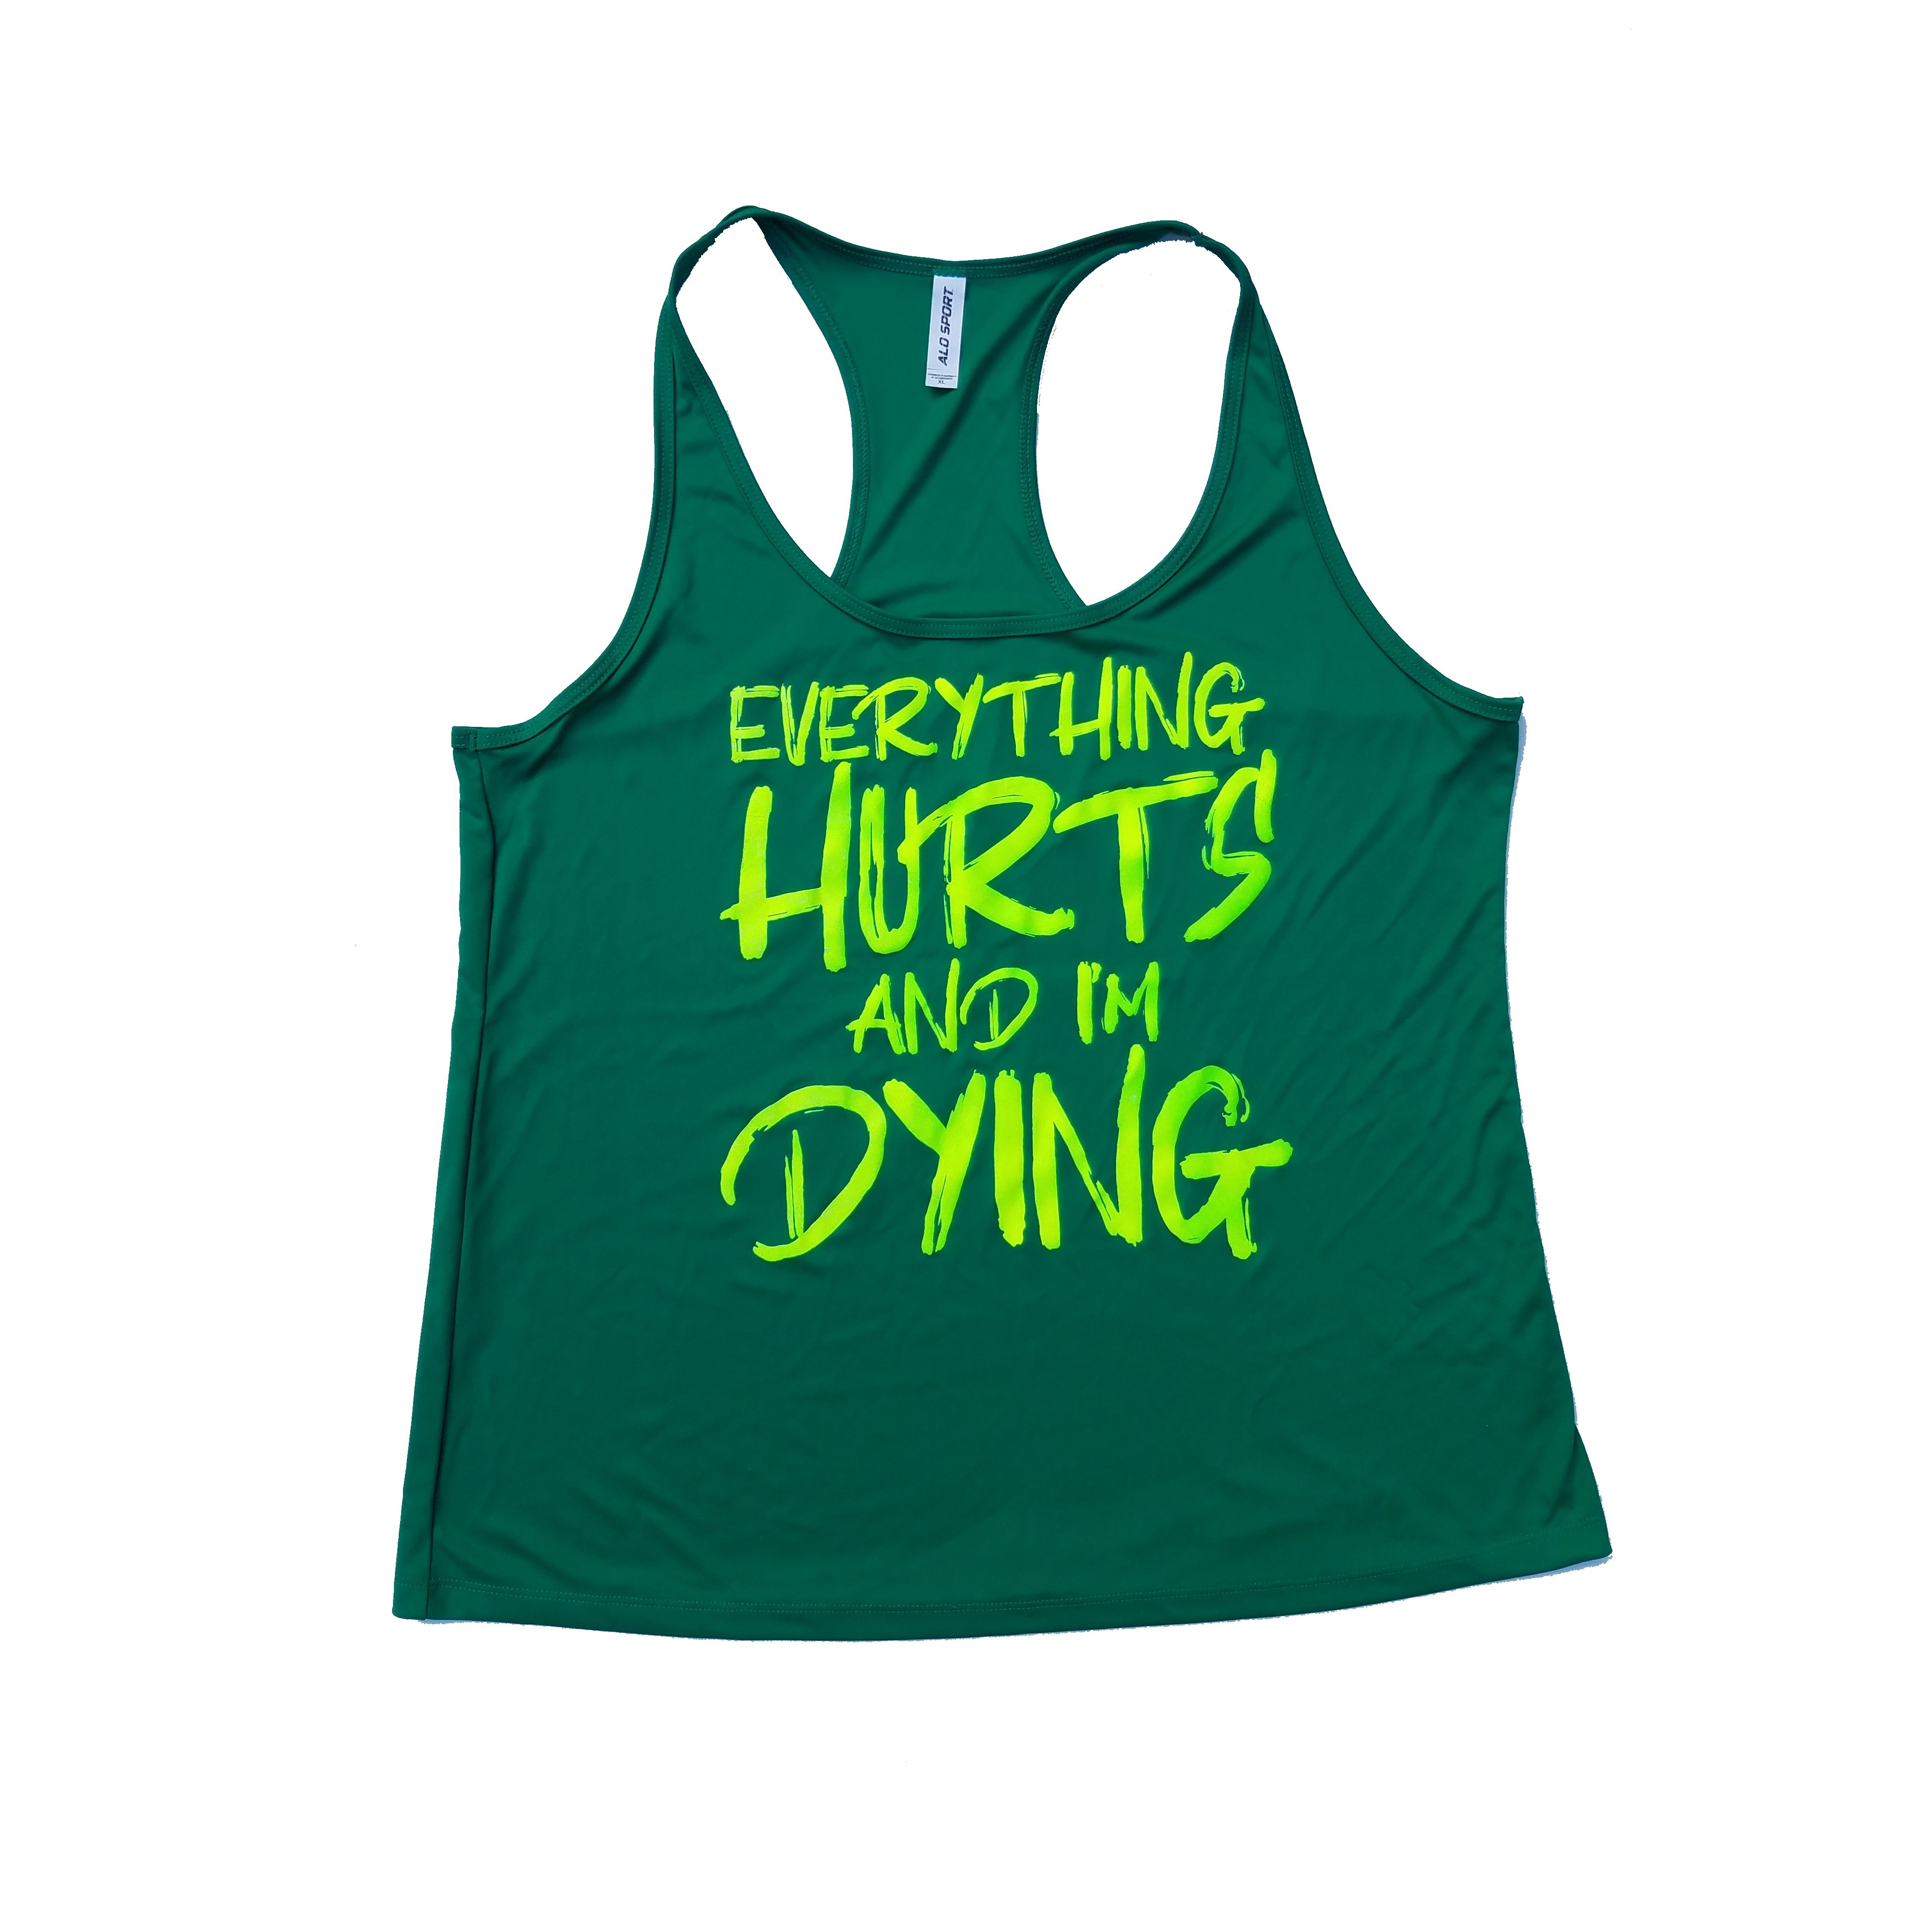 Everything Hurts Women's Dry Fit Tank Top